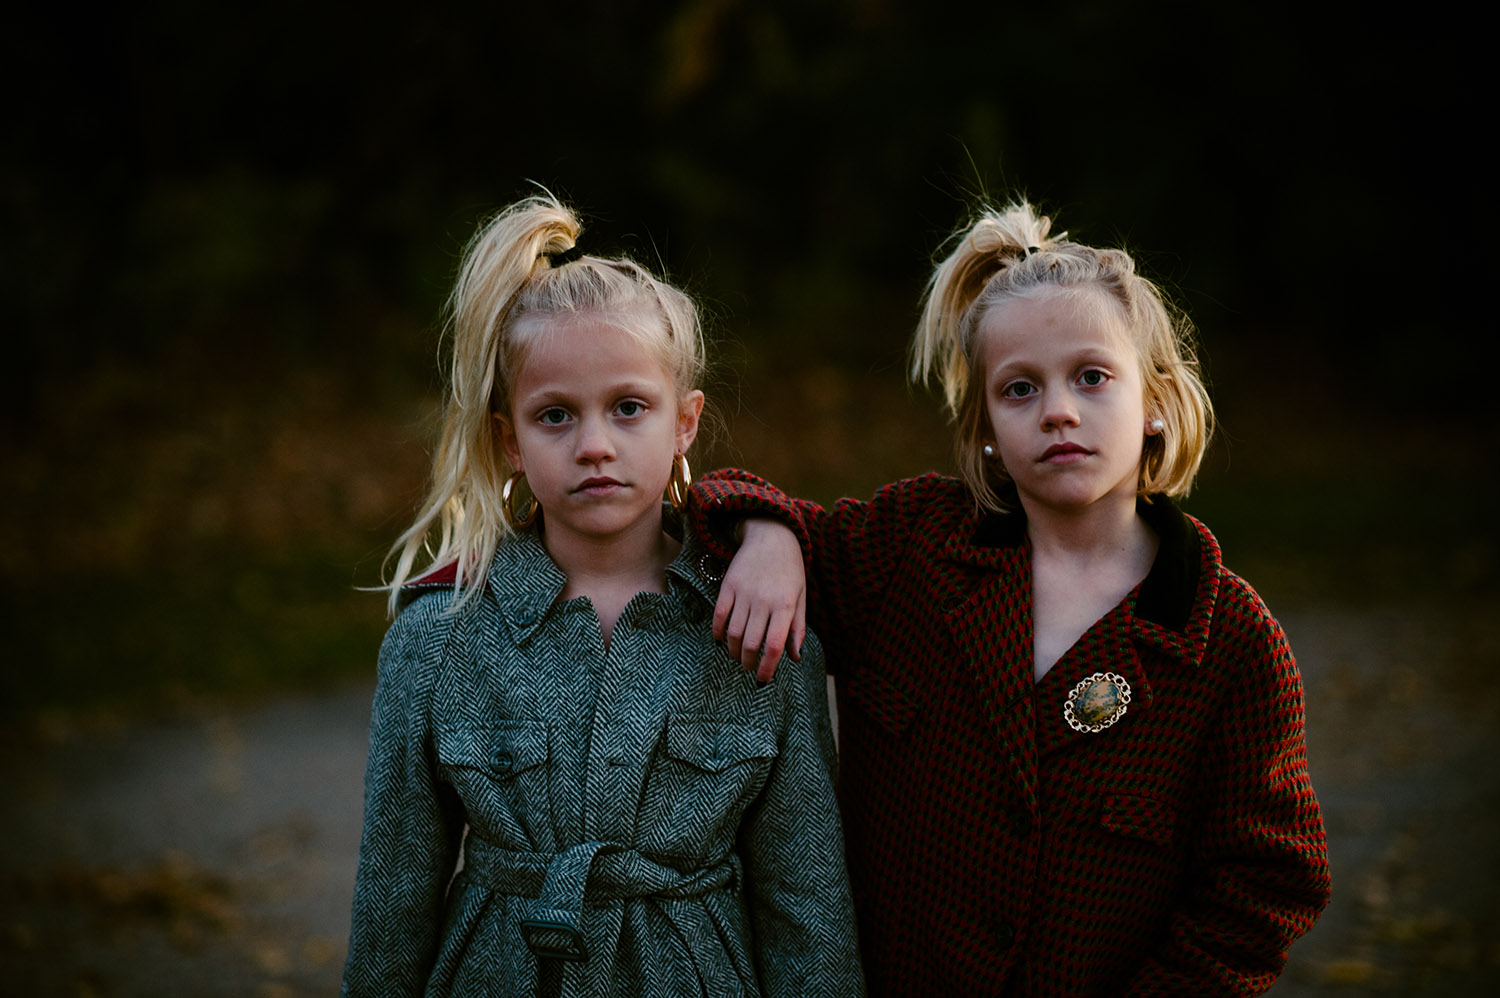 twin girls in vintage winter coats